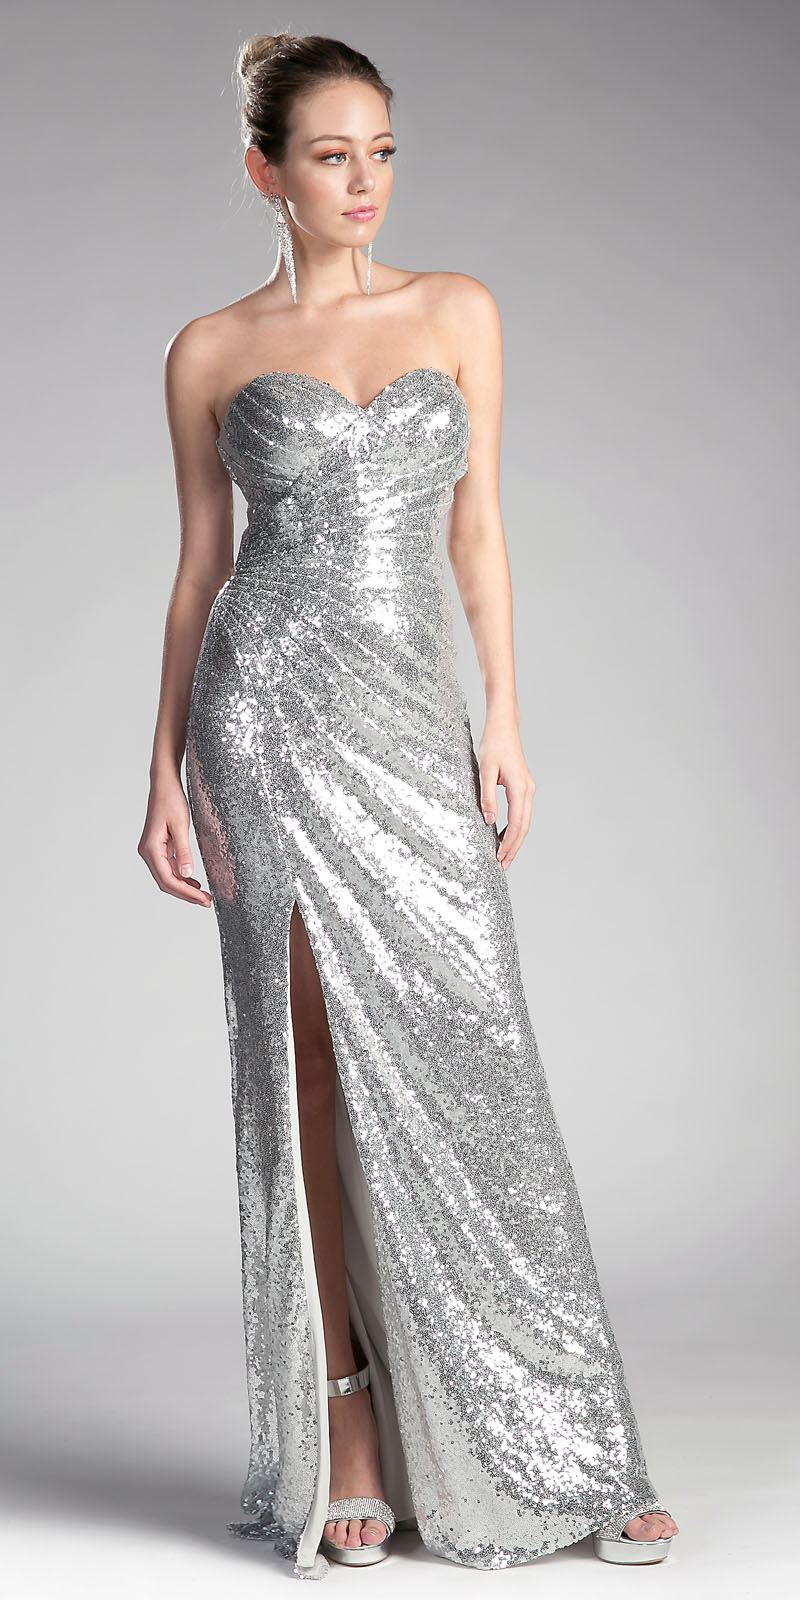 33cf73445529e ... Champagne Sequins Strapless Long Prom Dress Sweetheart Neckline Silver  Sequins Strapless Long Prom Dress Sweetheart Neckline Silver Cinderella  Divine ...